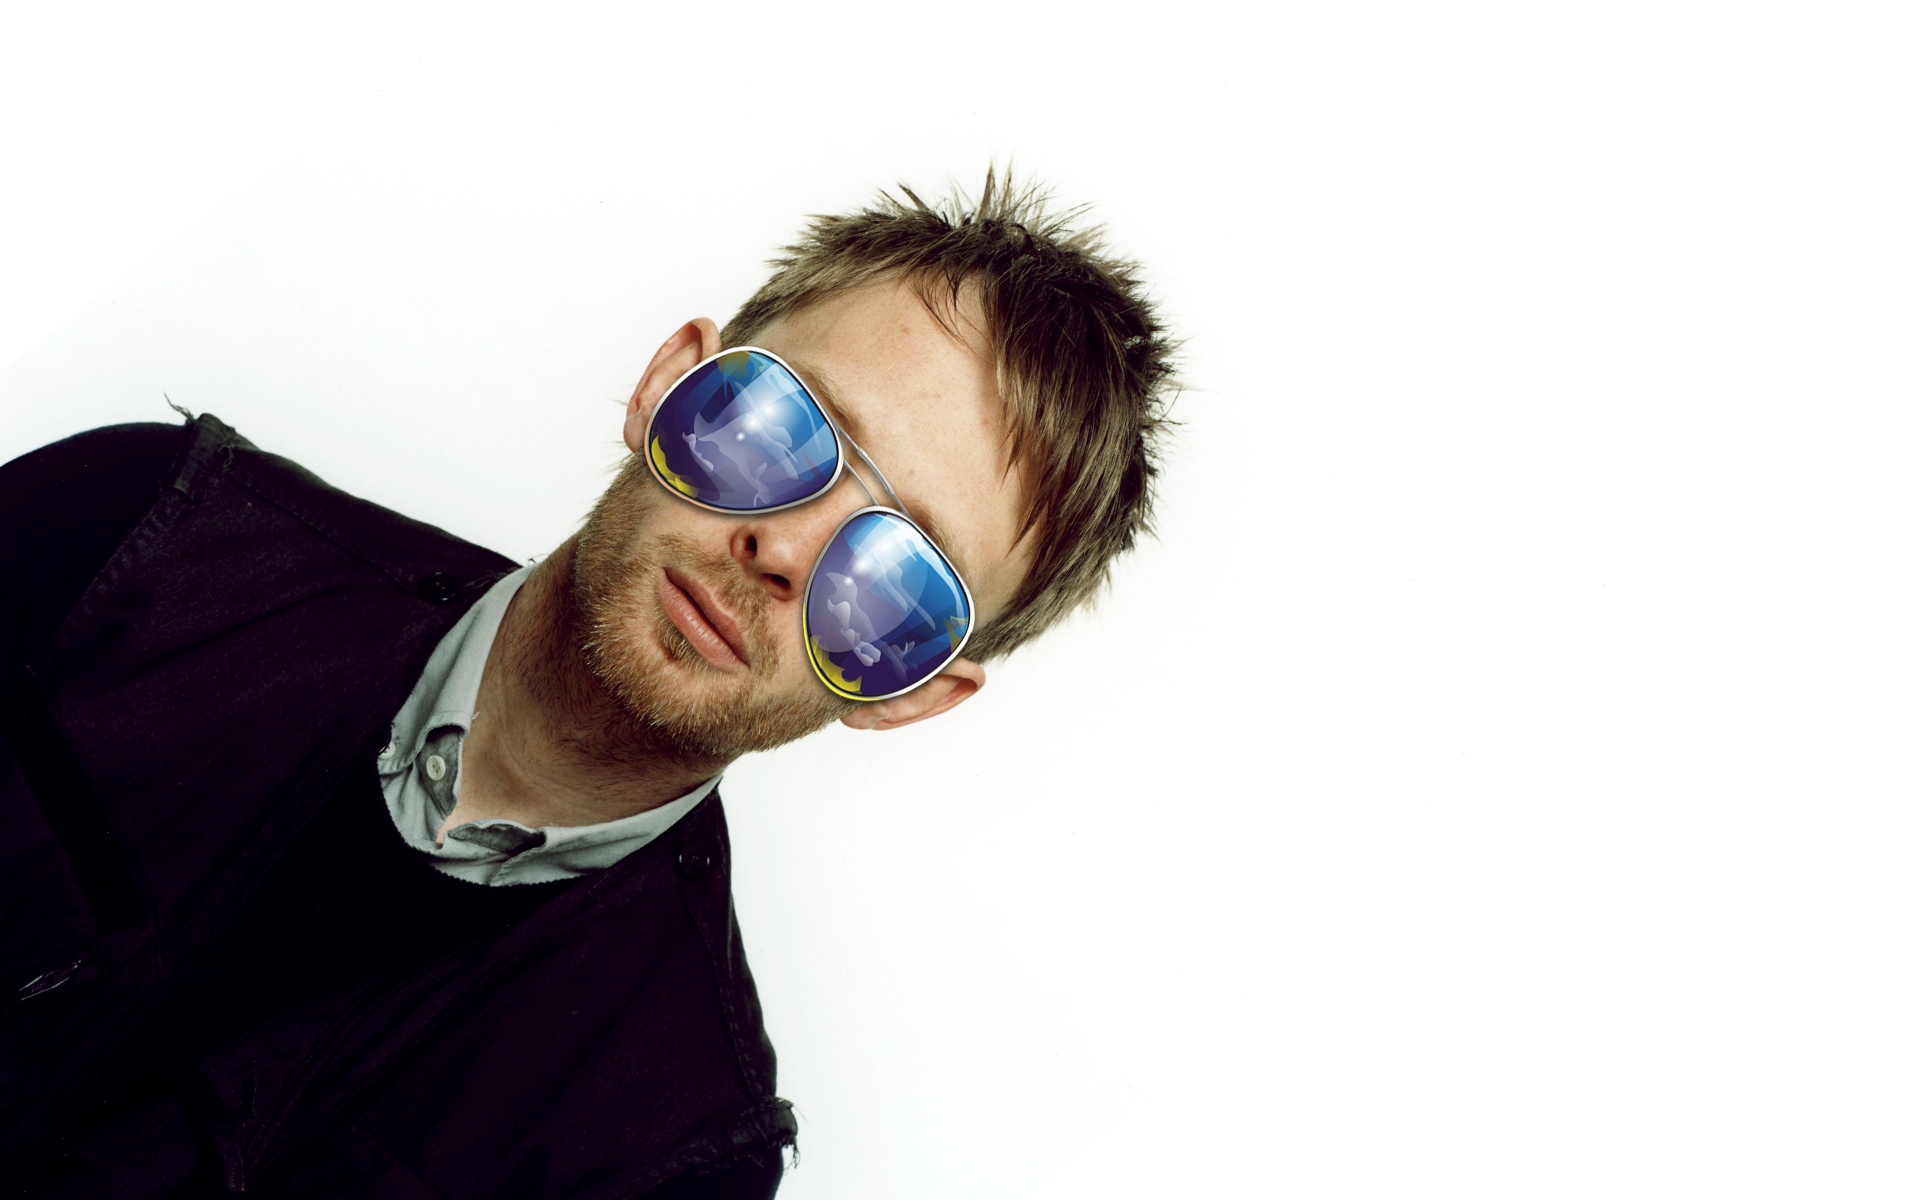 thom thumb czechin in HD Wallpaper